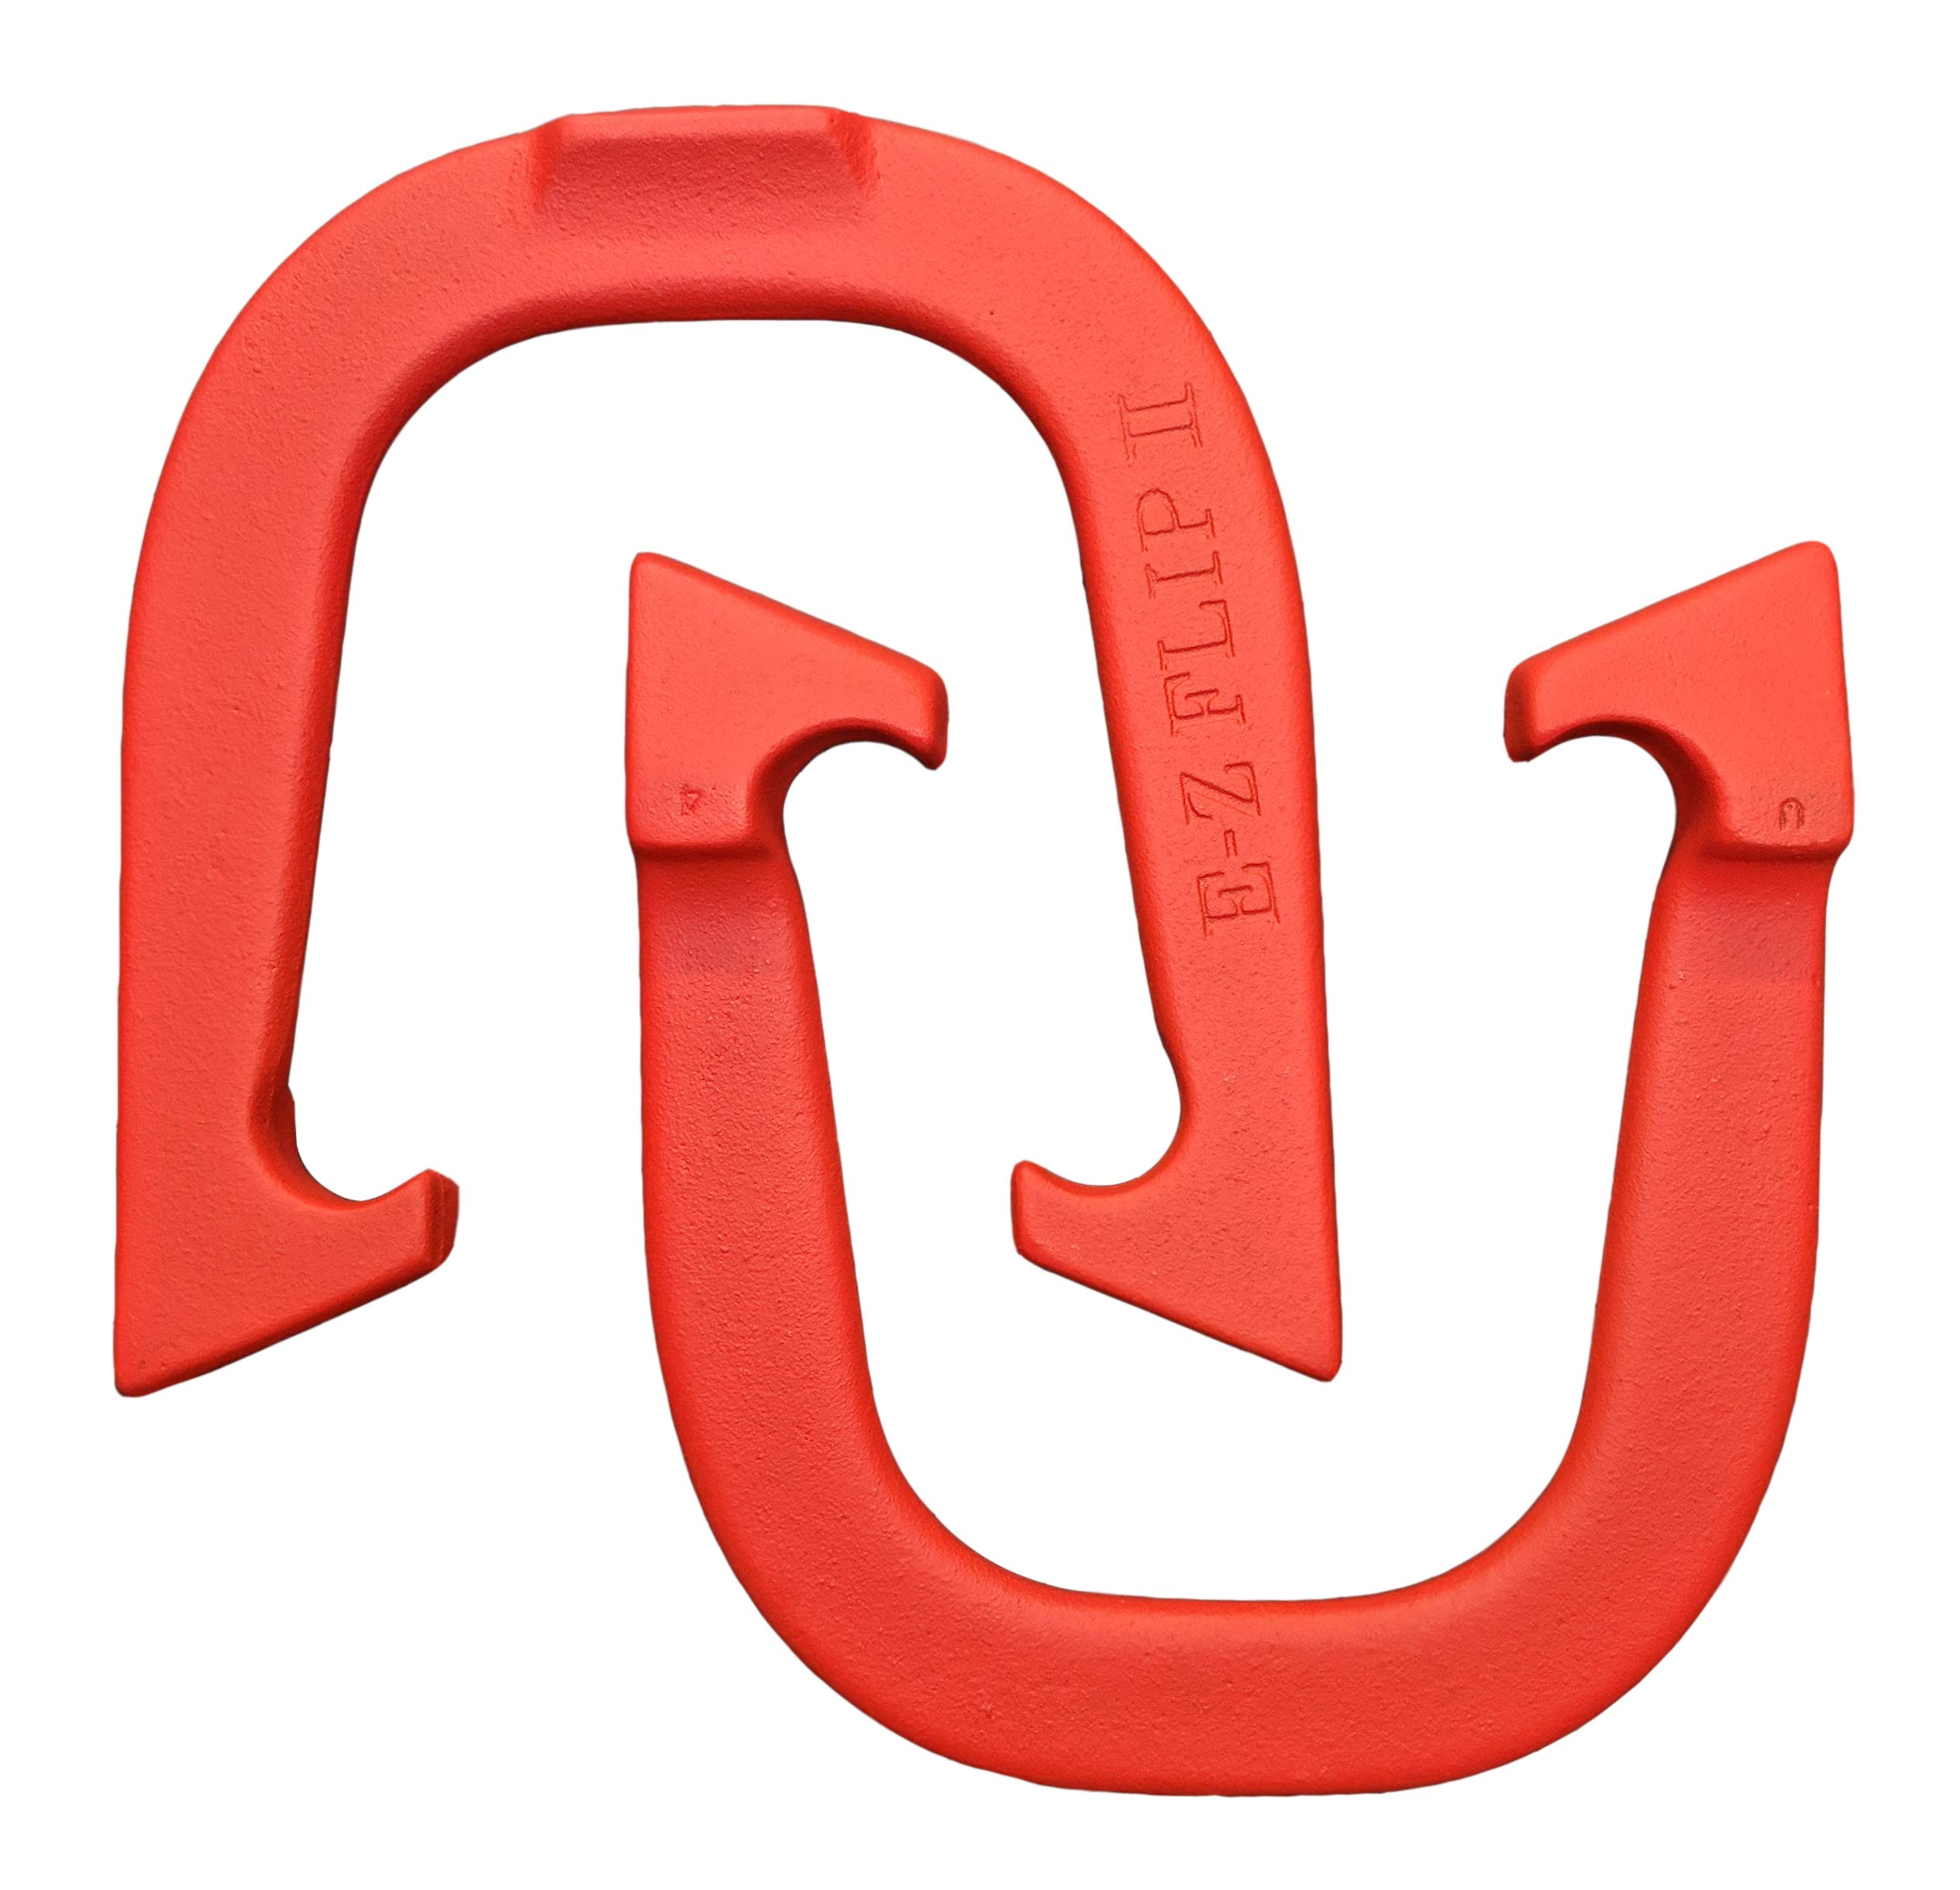 E-Z Flip II Professional Pitching Horseshoes- Made in The USA (Red- Single Pair (2 Shoes)) by Thoroughbred Horseshoes